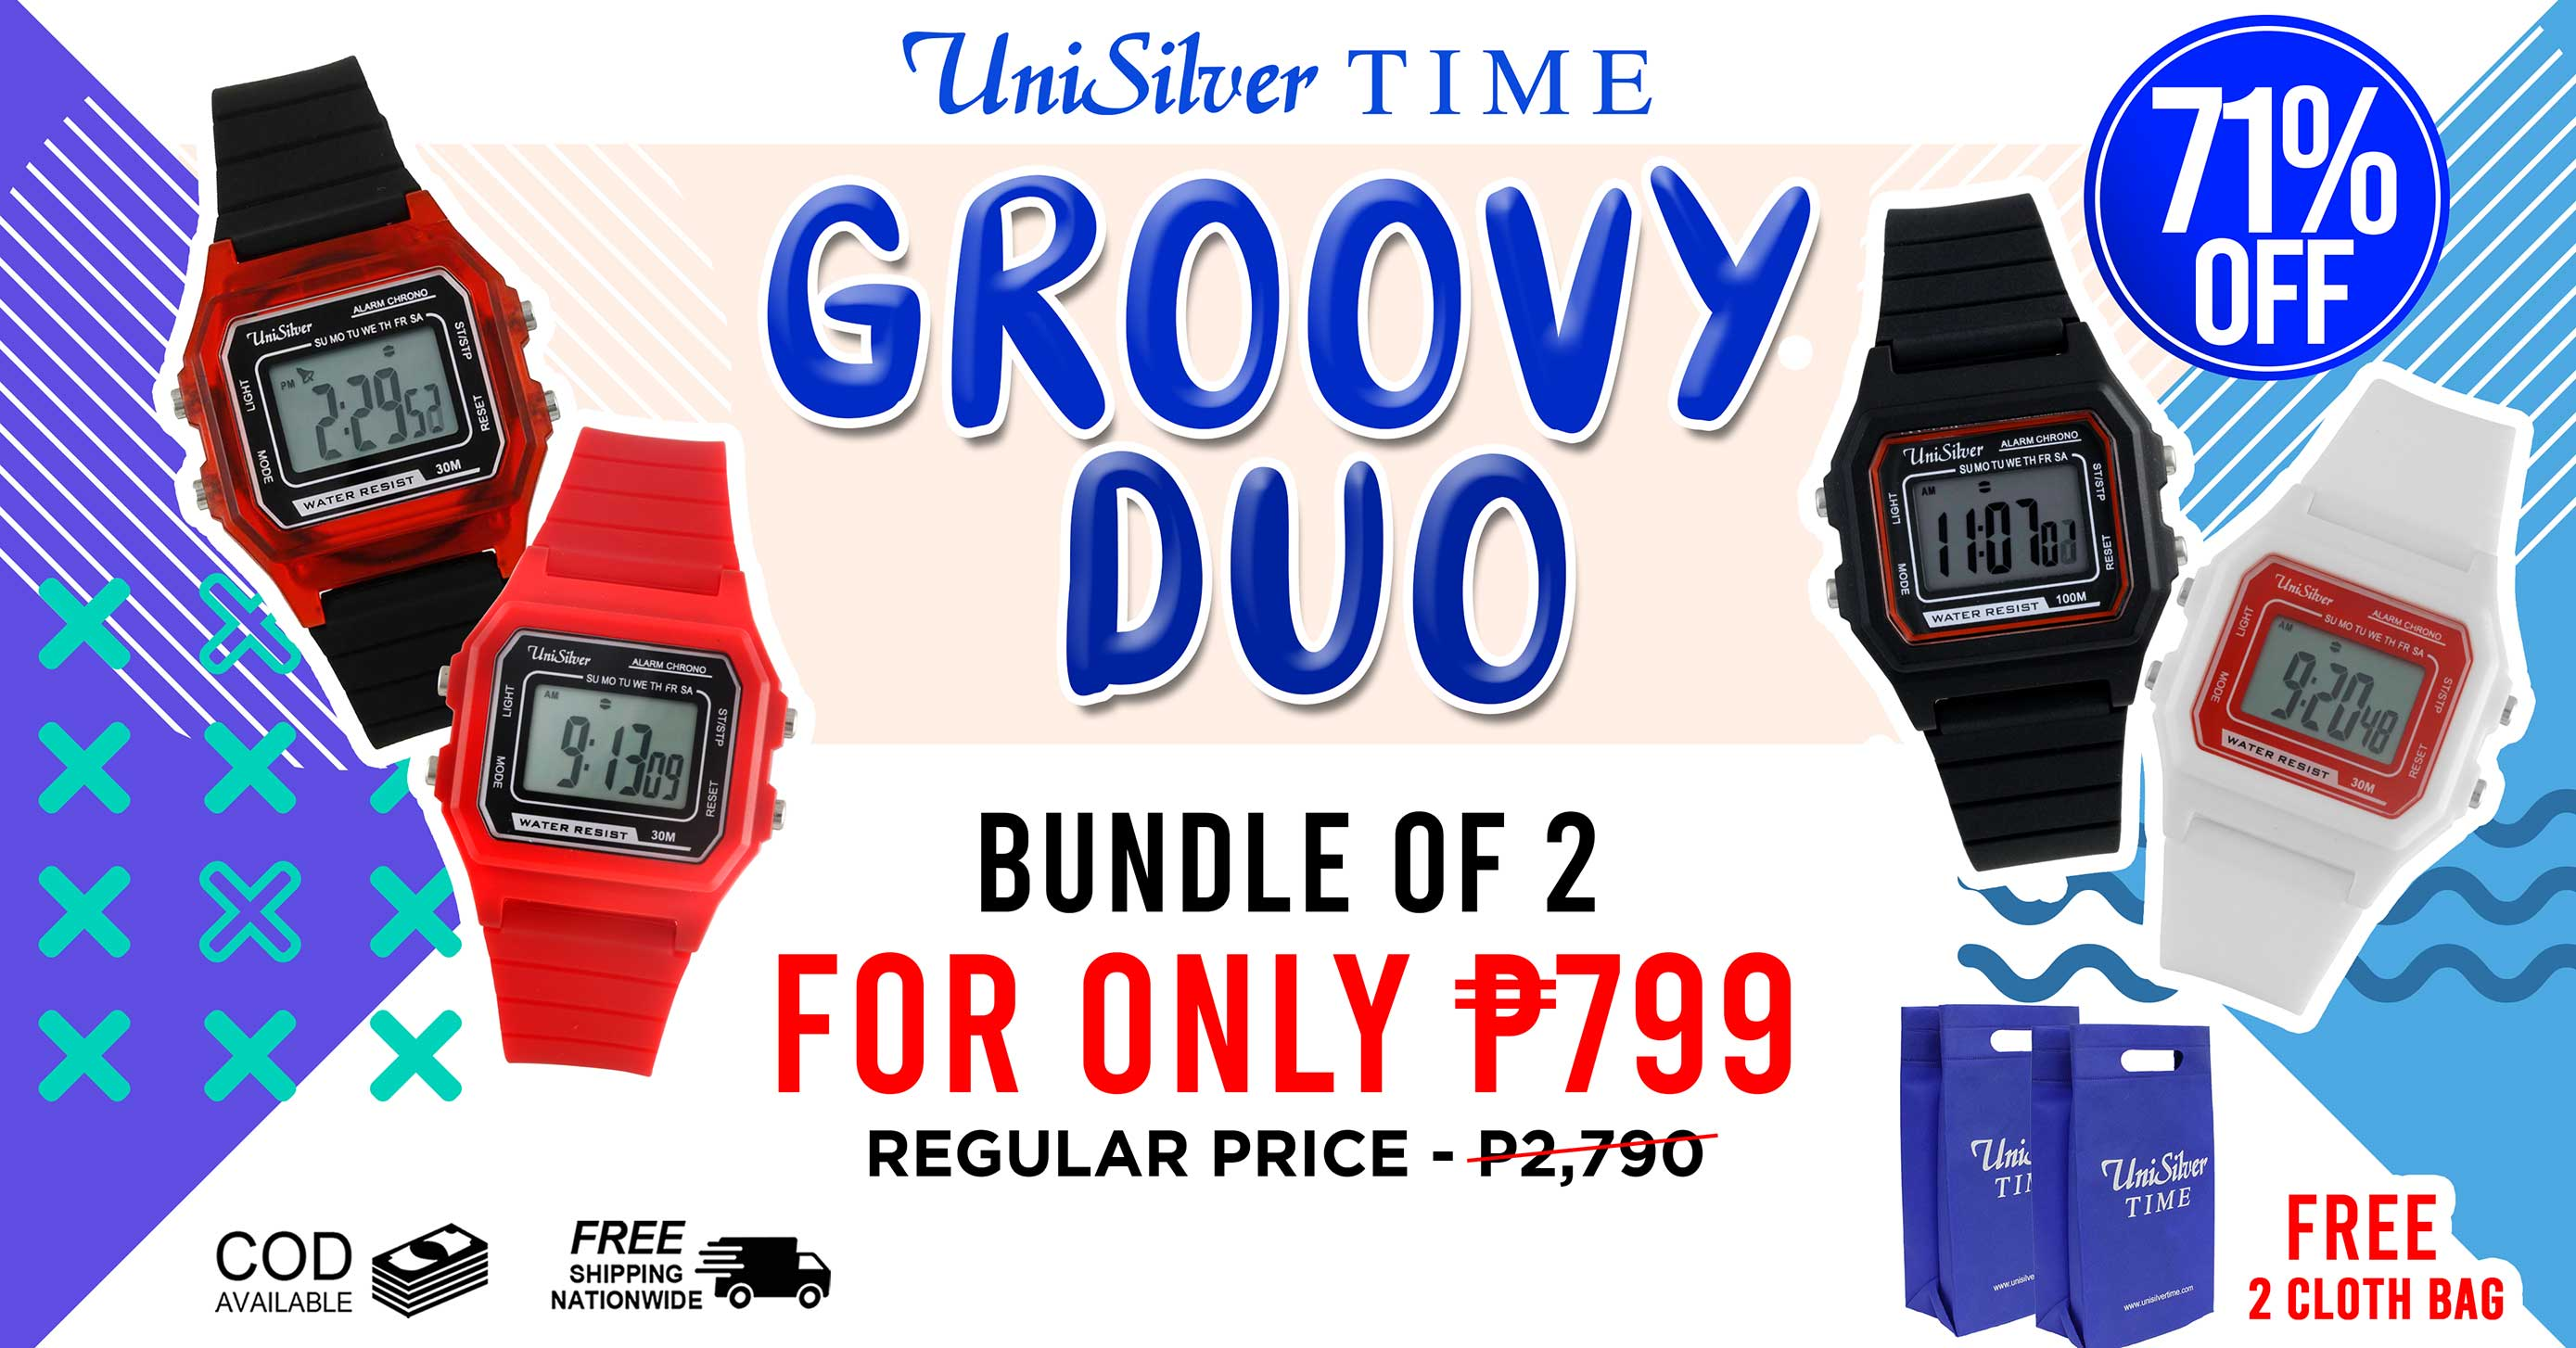 Groove to the beat of the festivities with the Groovy Duo from UniSilver TIME!  Pick any 2 watches for only PHP799.  That's 71% off the regular price of PHP2,790.  Choose from 8 colors.  Free shipping and cash on delivery option is available.  Also, get a free lucky pouch.  This promo is available only online http://www.unisilvertime.com/ Get your watches now >>> http://bit.ly/34ncmu5